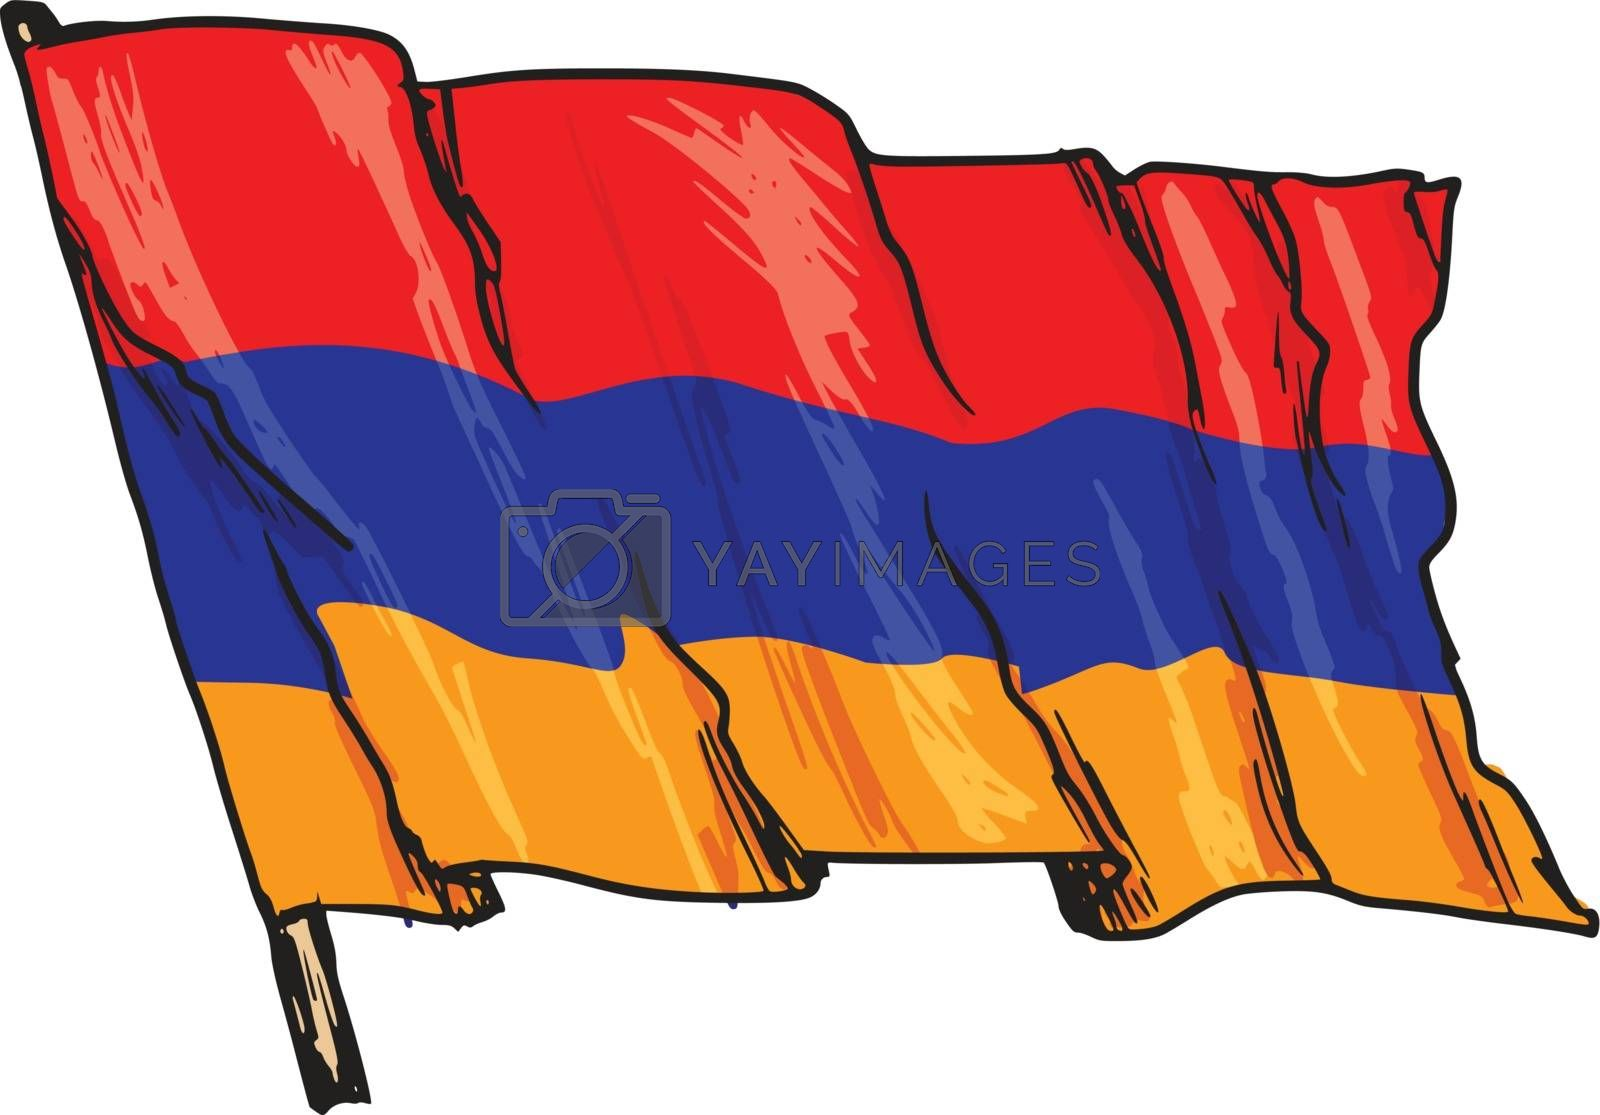 flag of Armenia by Perysty